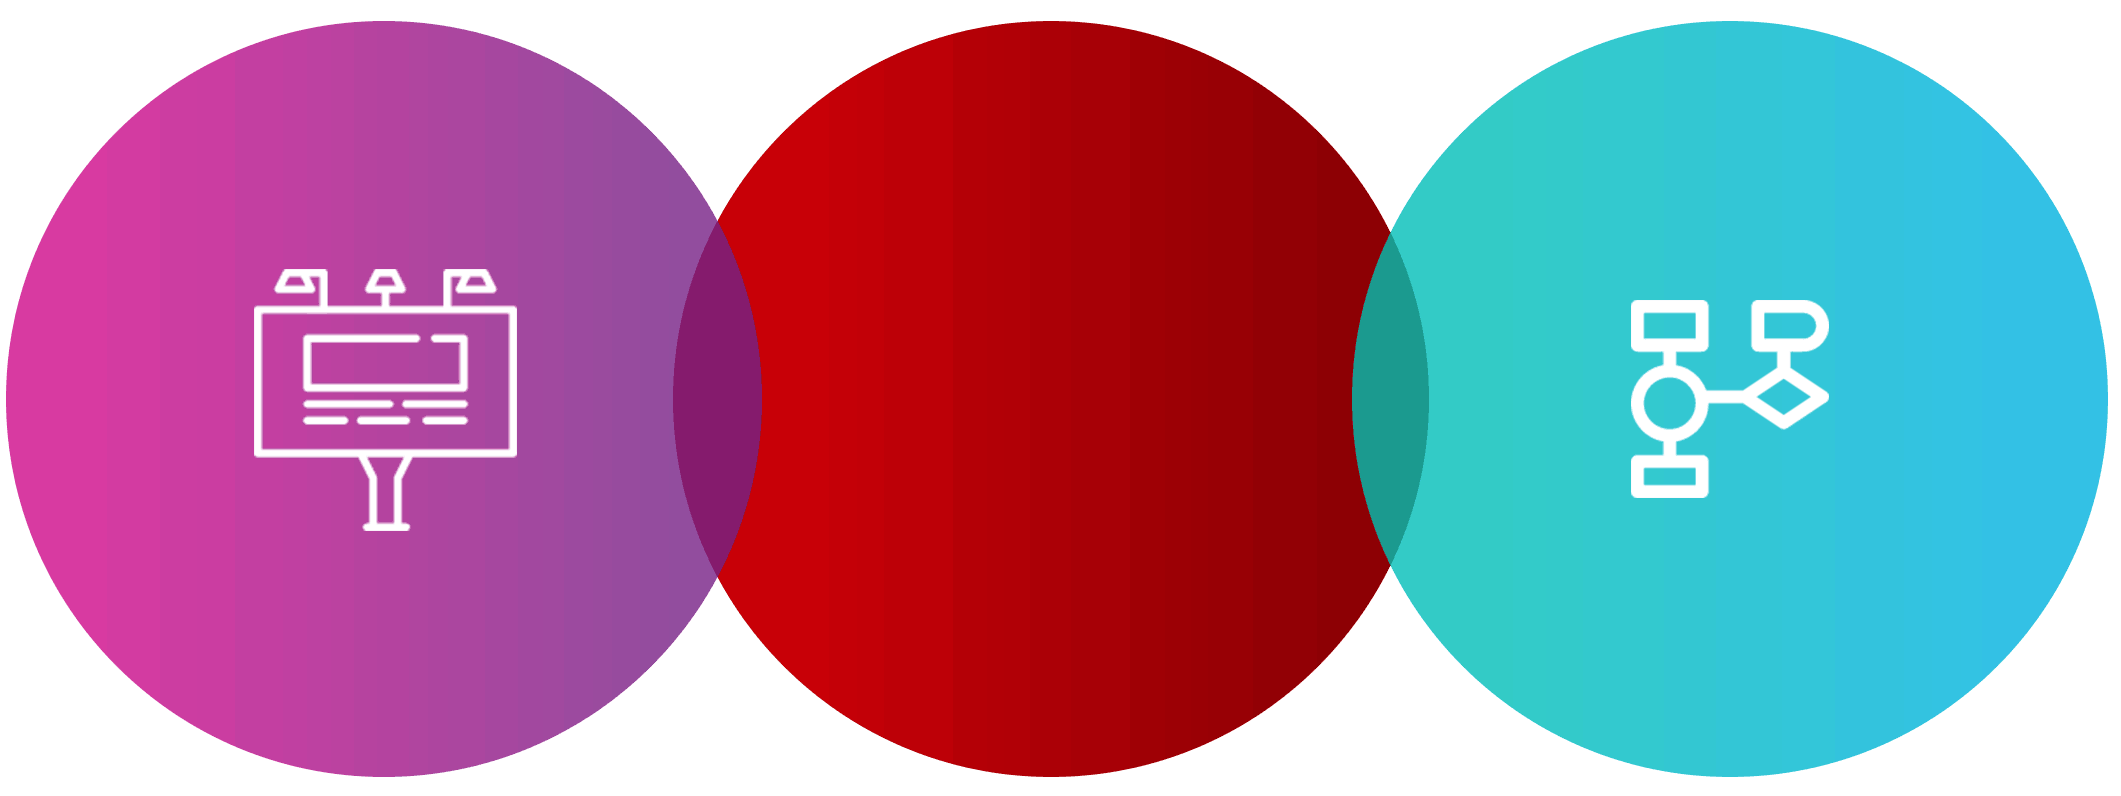 packages_globes